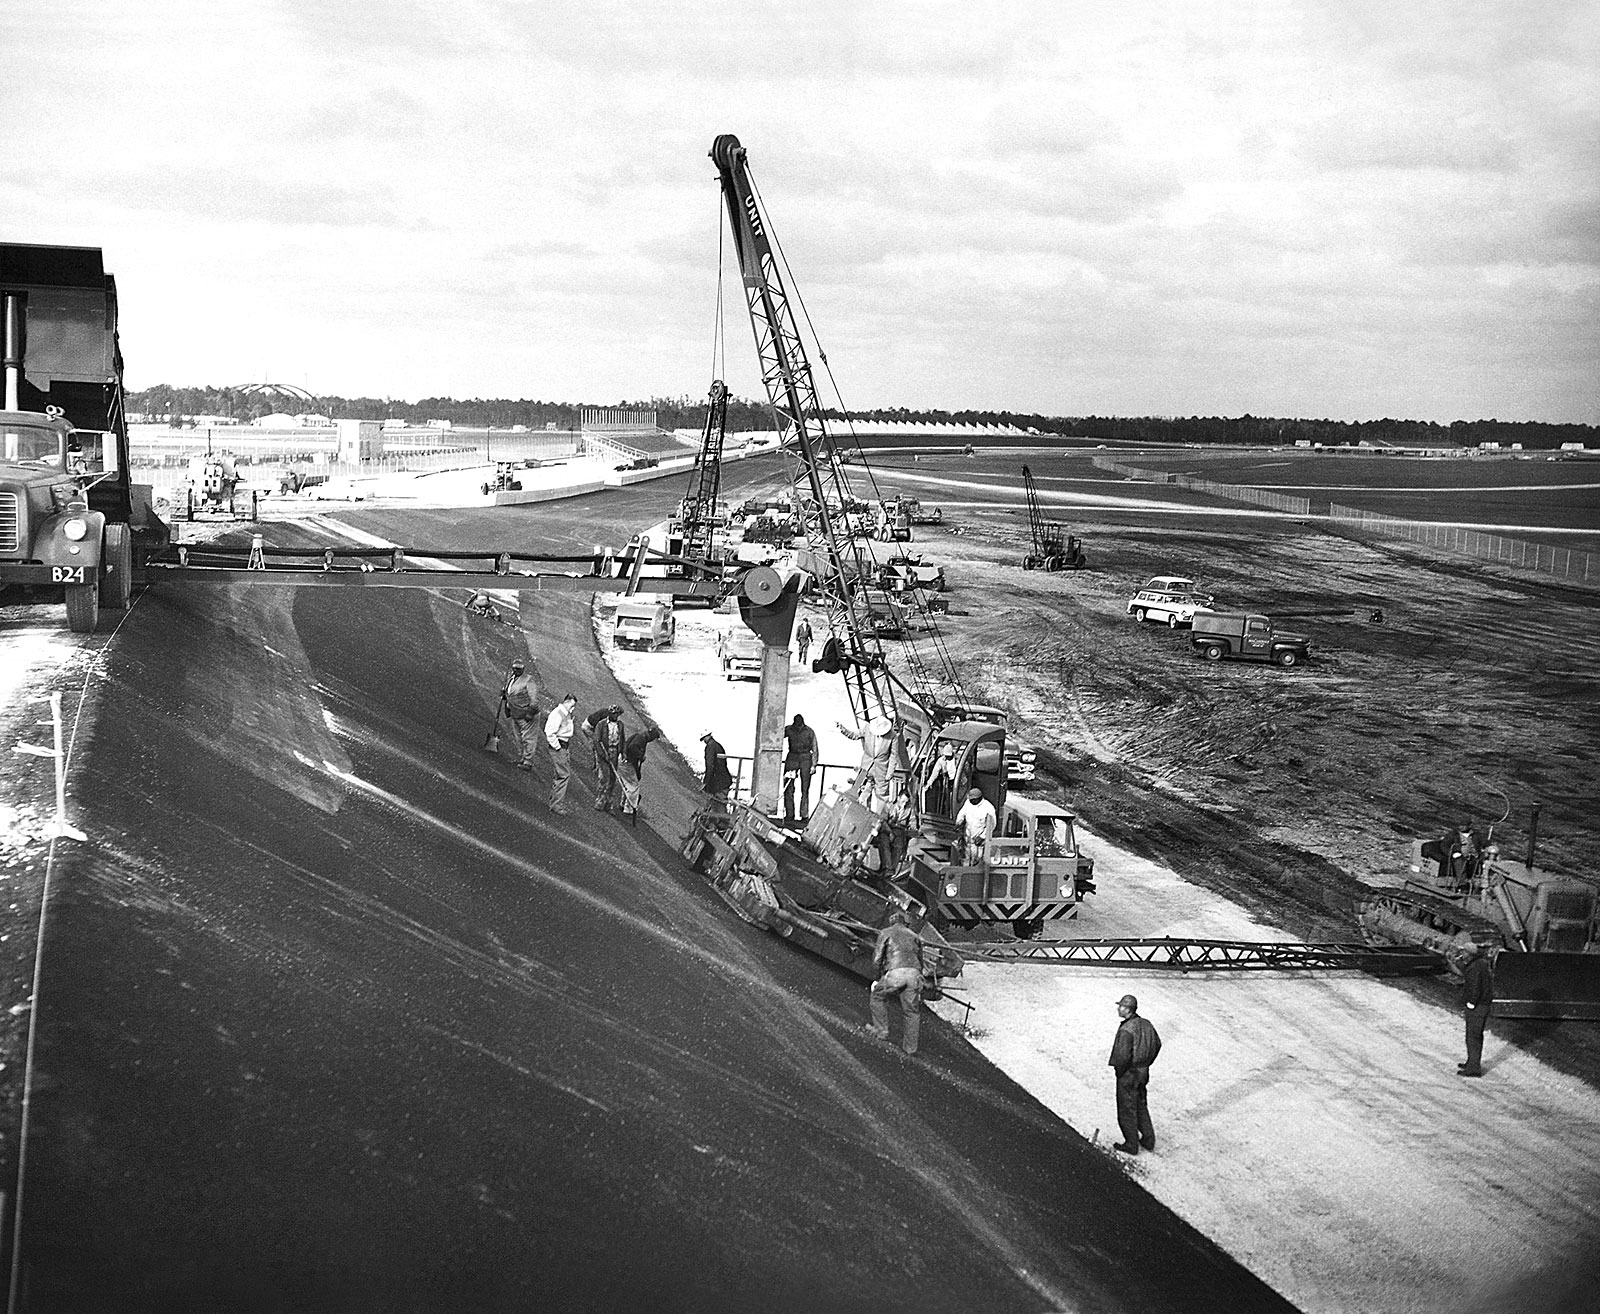 This Next Photo Below Shows Construction Taking Place For The Daytona Race Track Which Replaced Sandy Beach Course Pictured Above